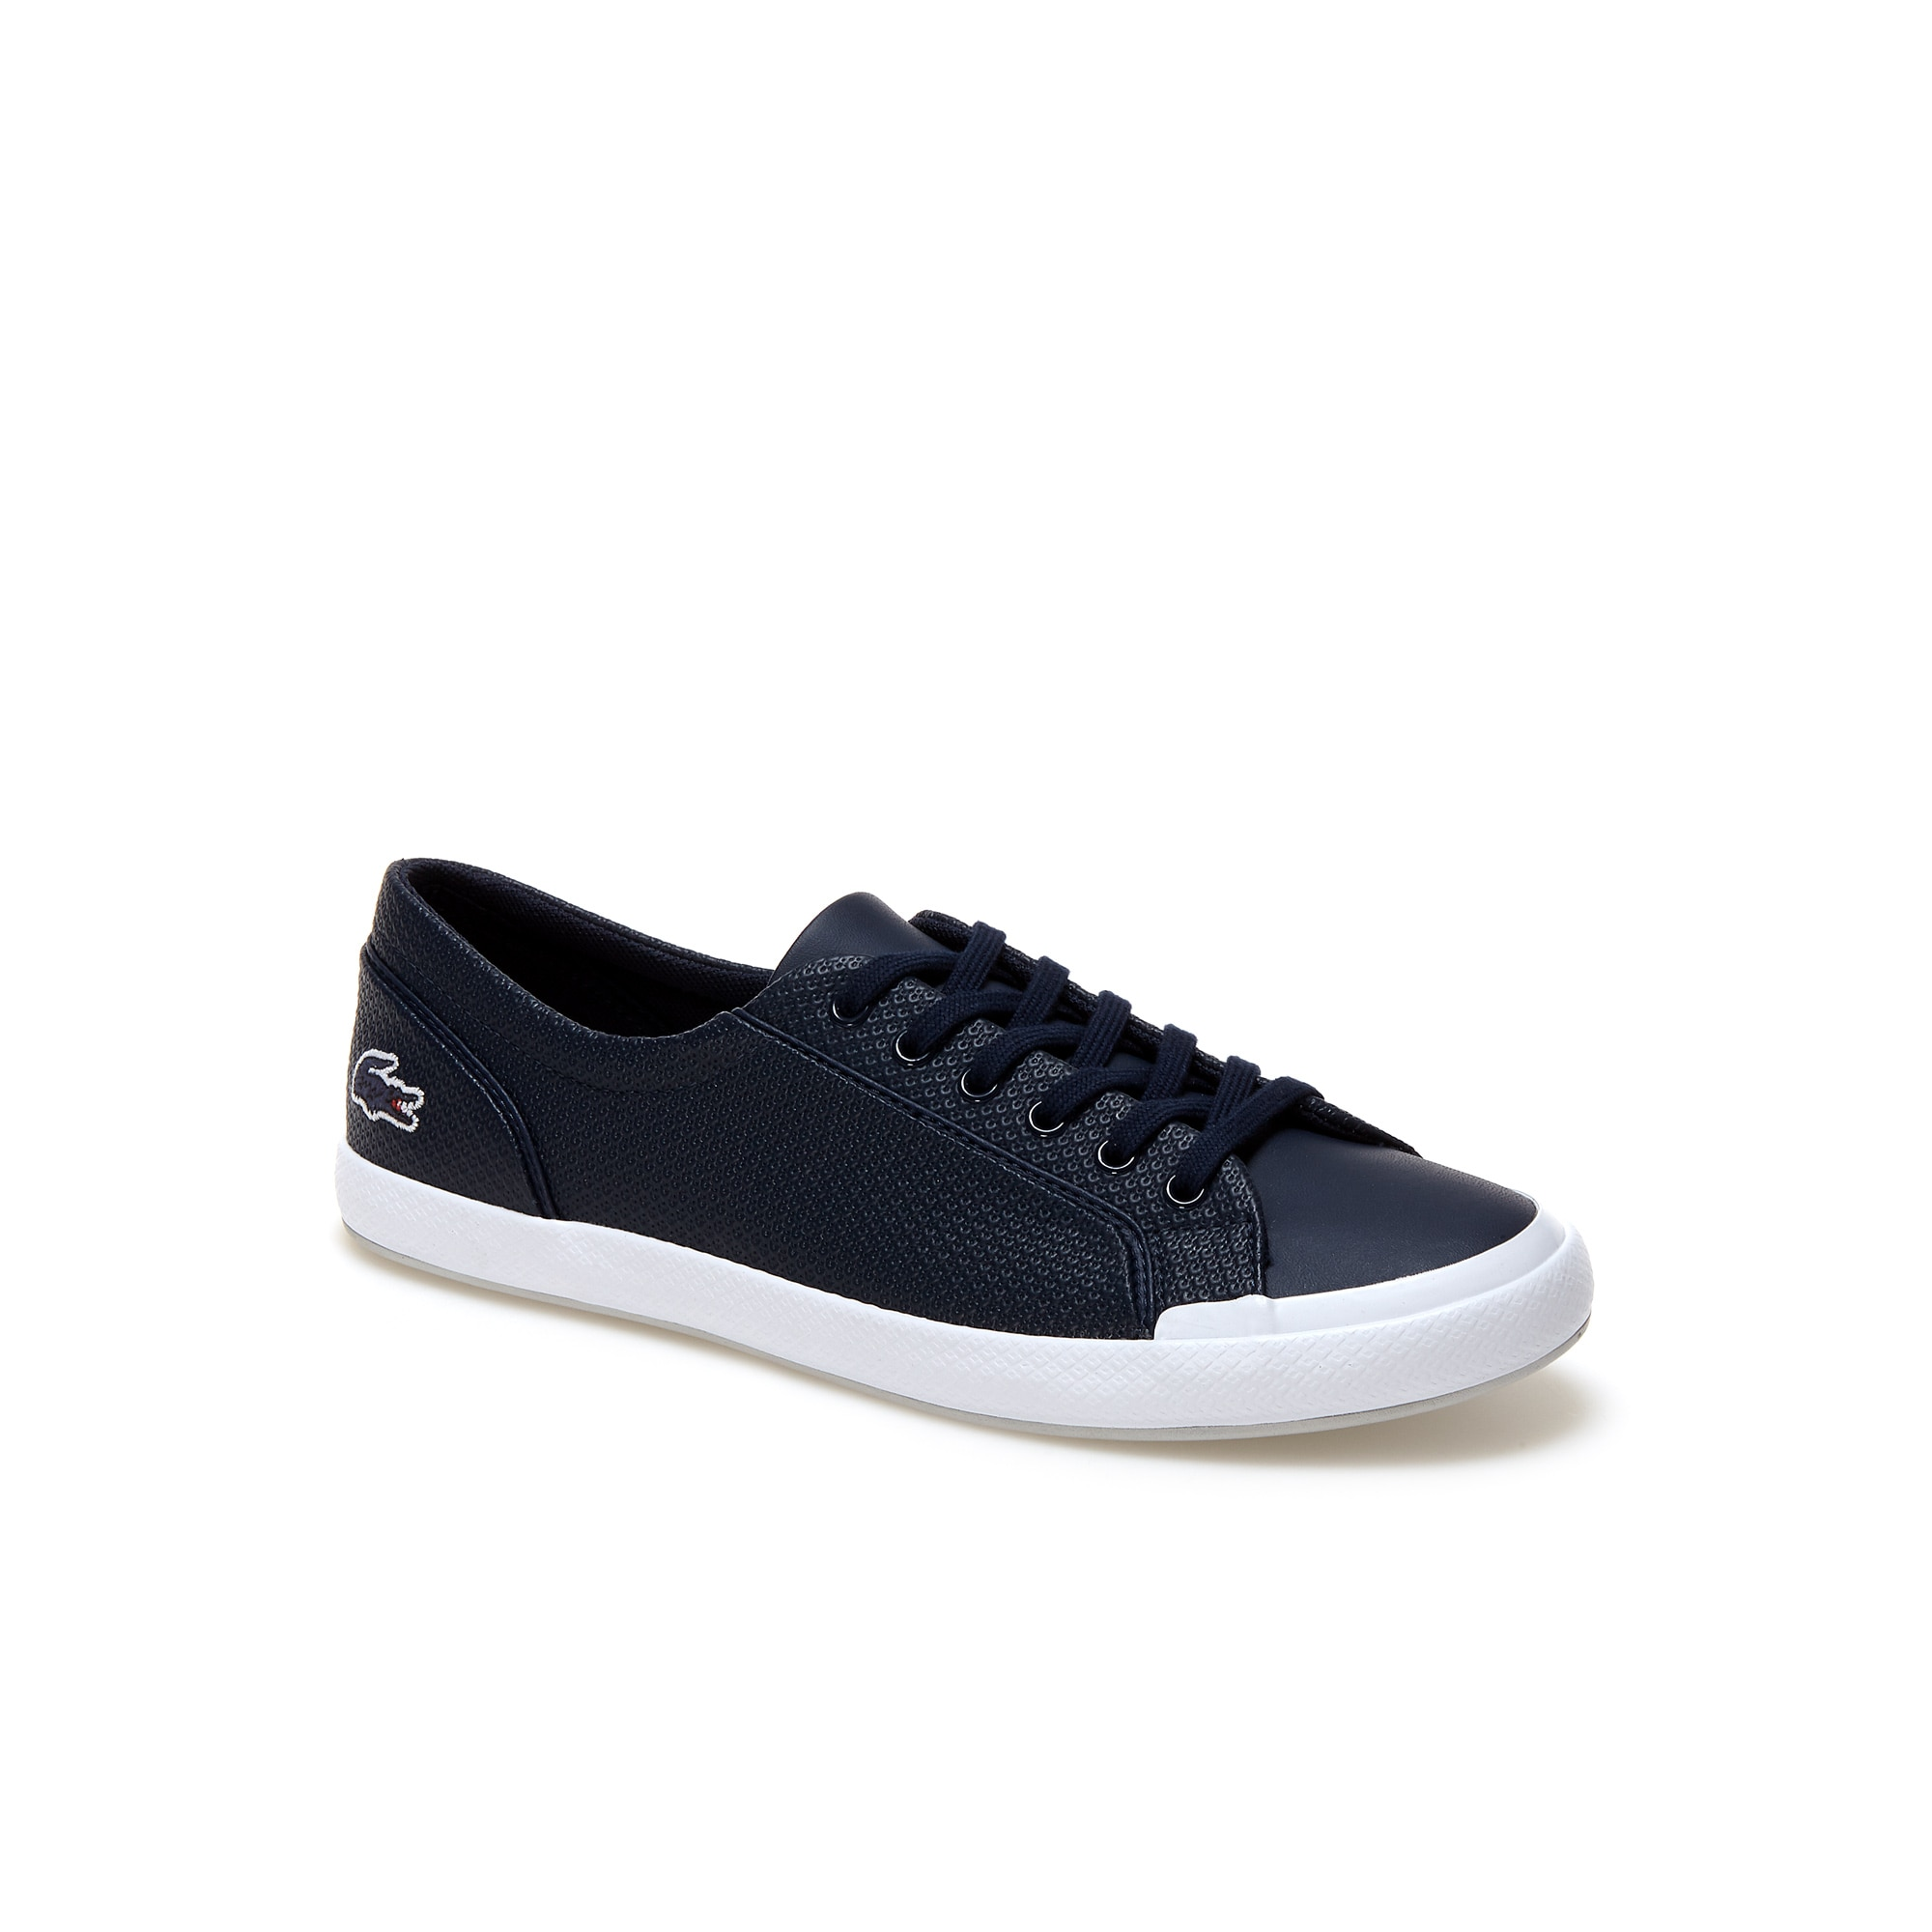 Women's Lancelle 6 Eye Leather Trainers